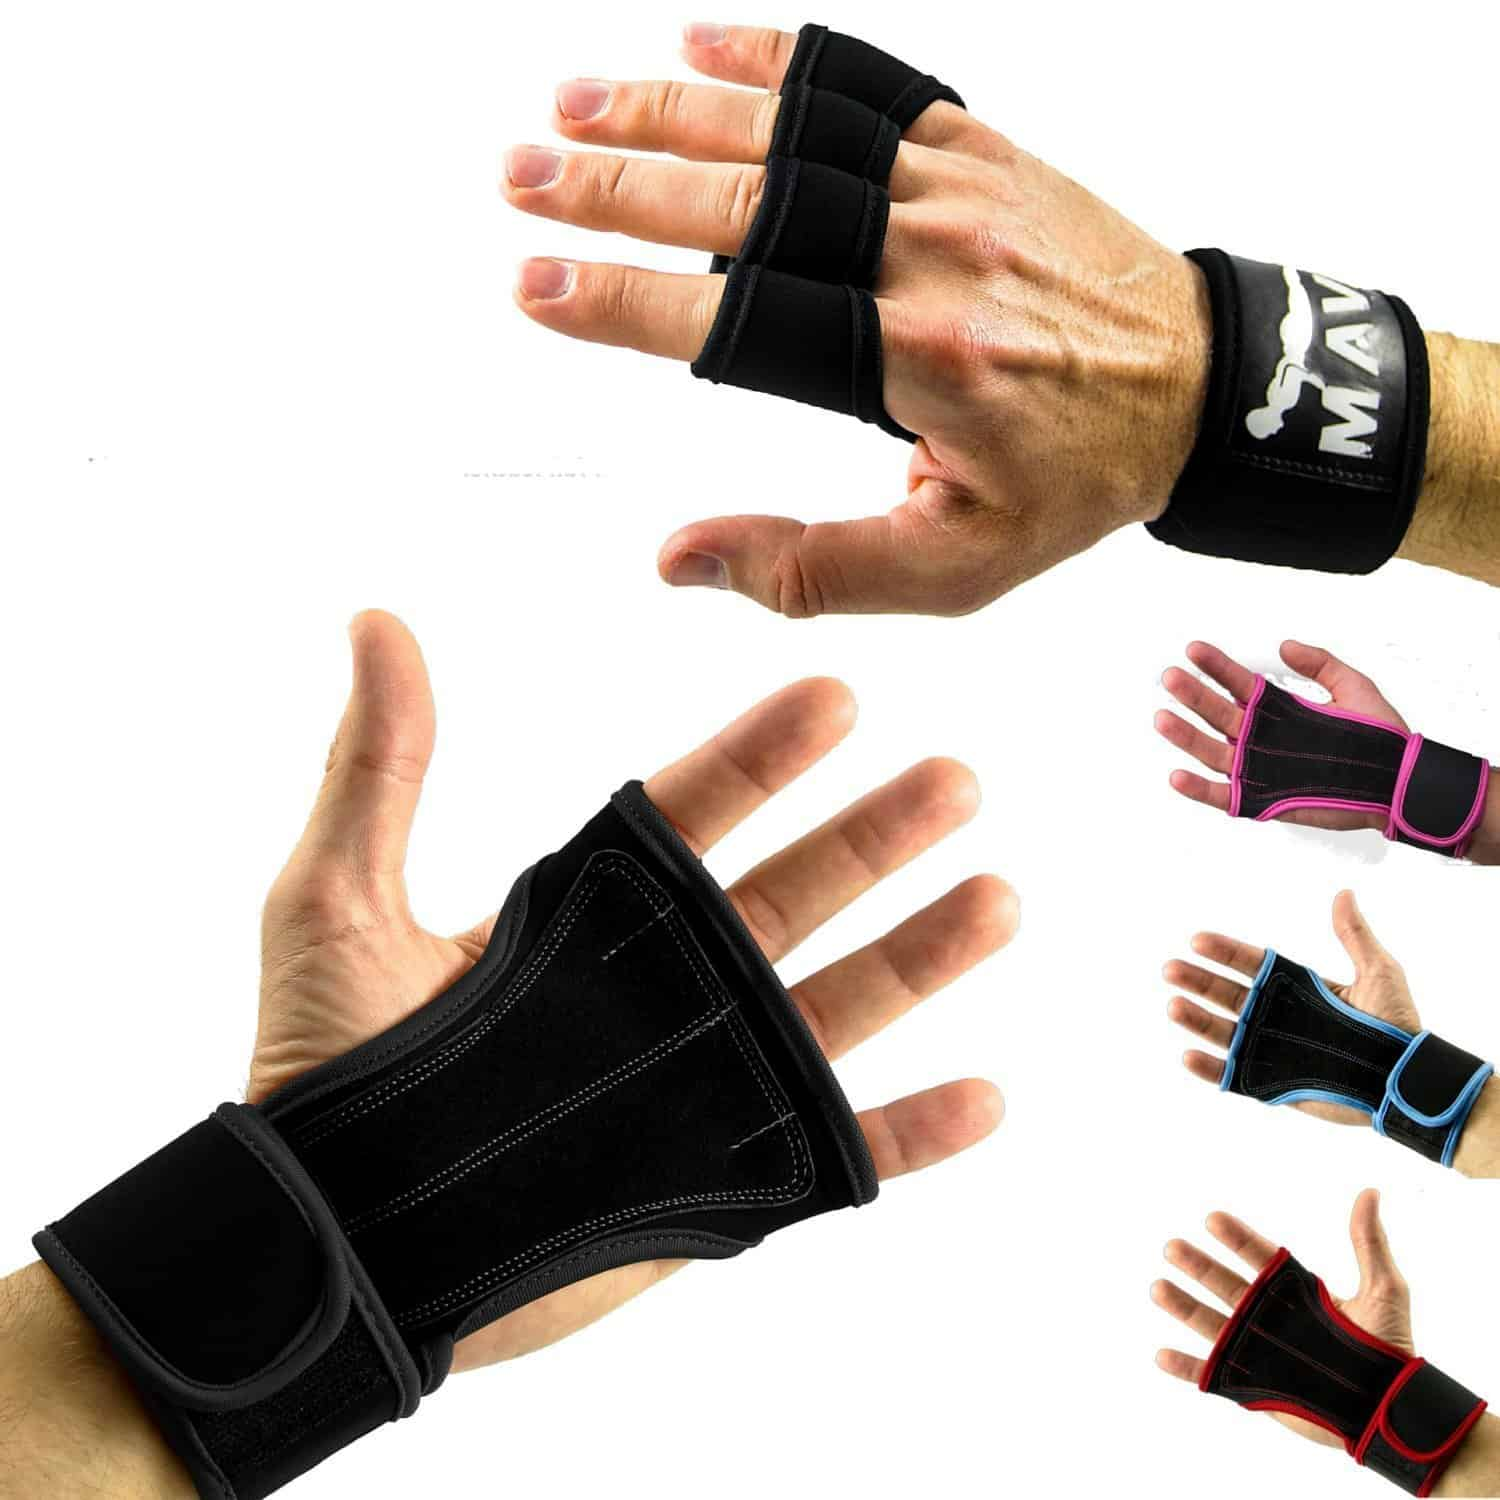 Mava Crossfit Gloves: The 5 Best Crossfit Gloves & Pull-Up Hand Grips (Own The WOD